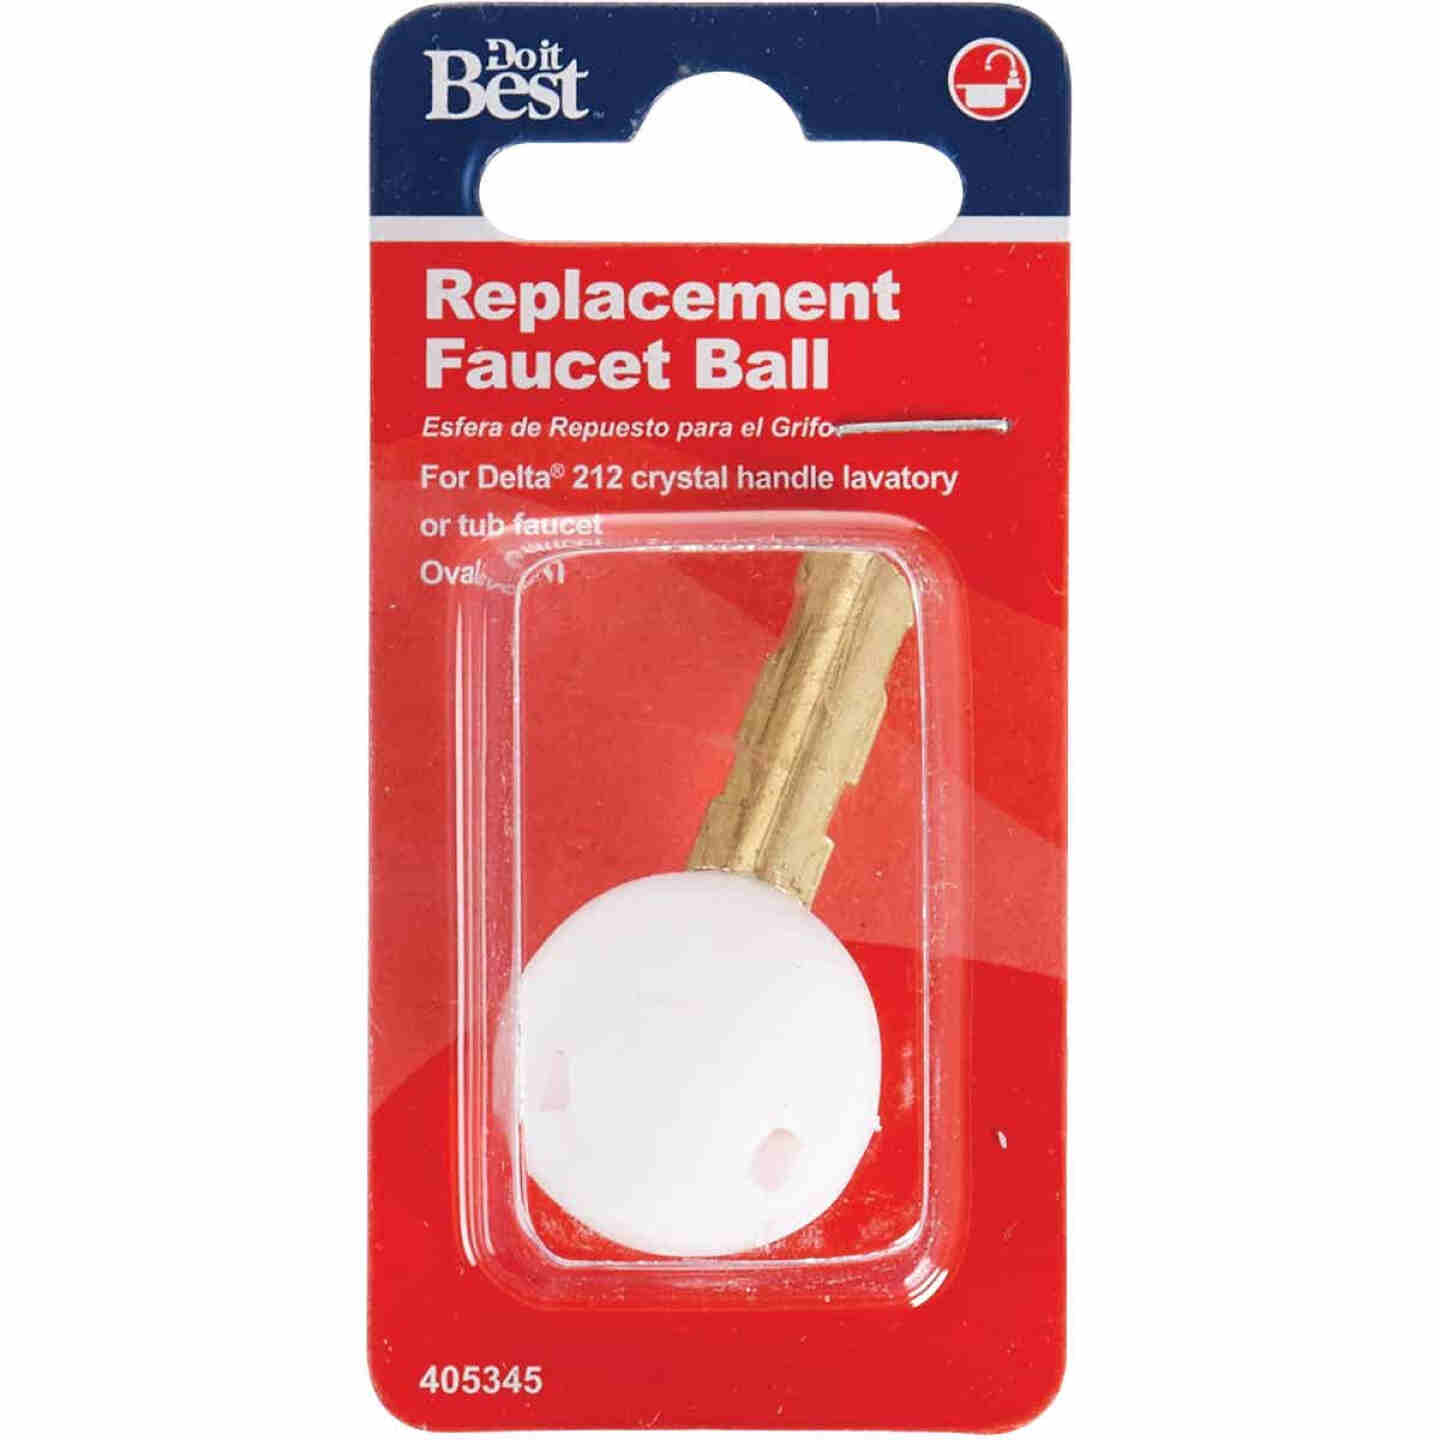 Do it Metal Ball Replacement for Delta 212 Crystal Handle/Peerless Image 2